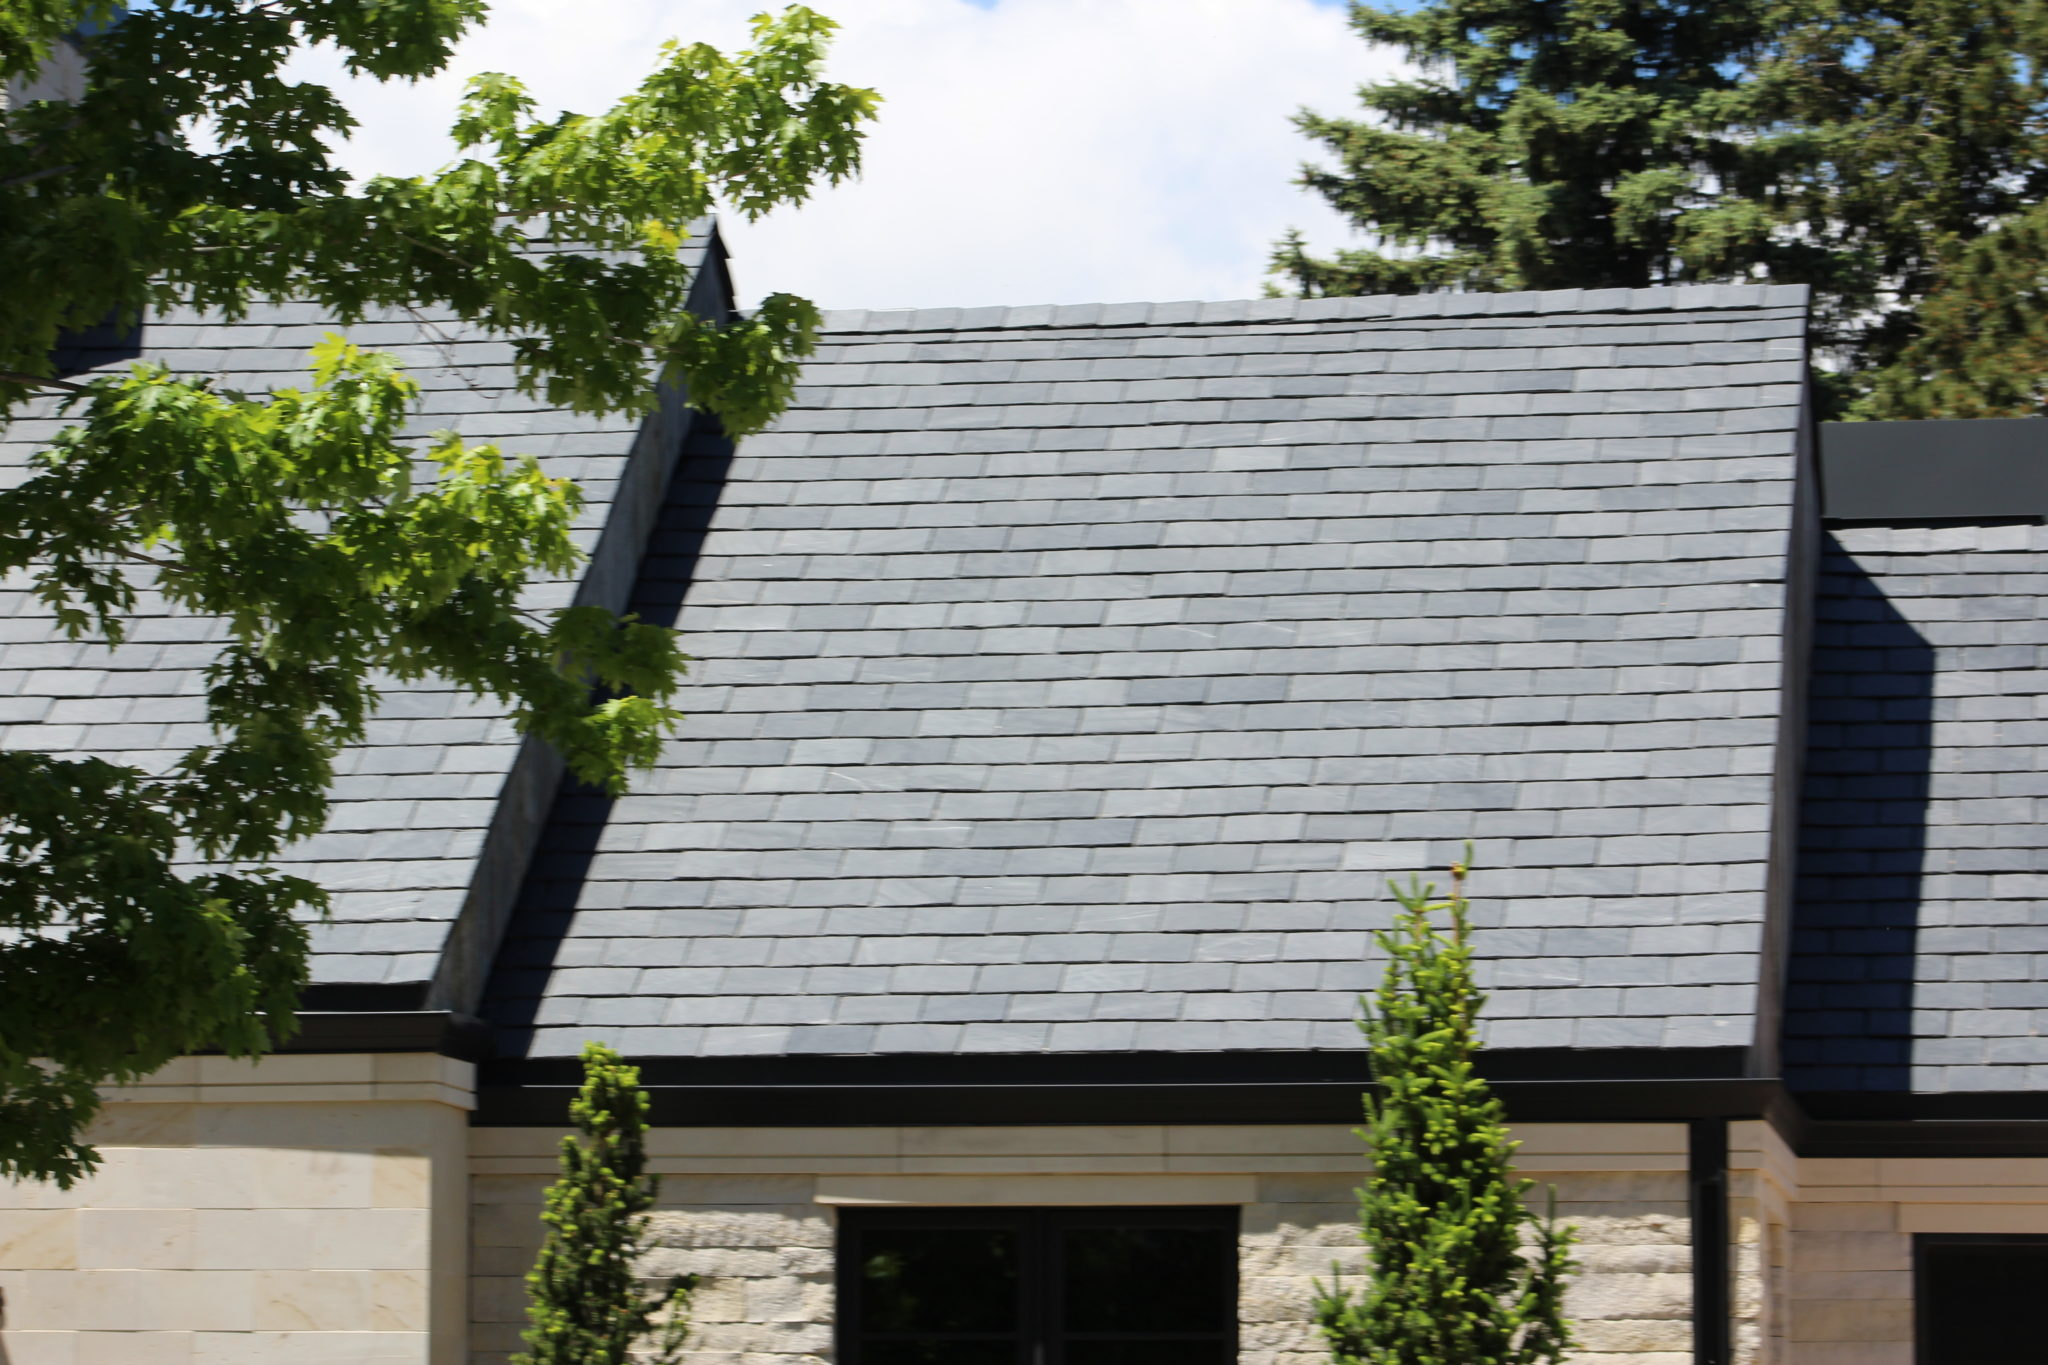 SlateTec - Lightweight Slate Roof System - Spanish Black